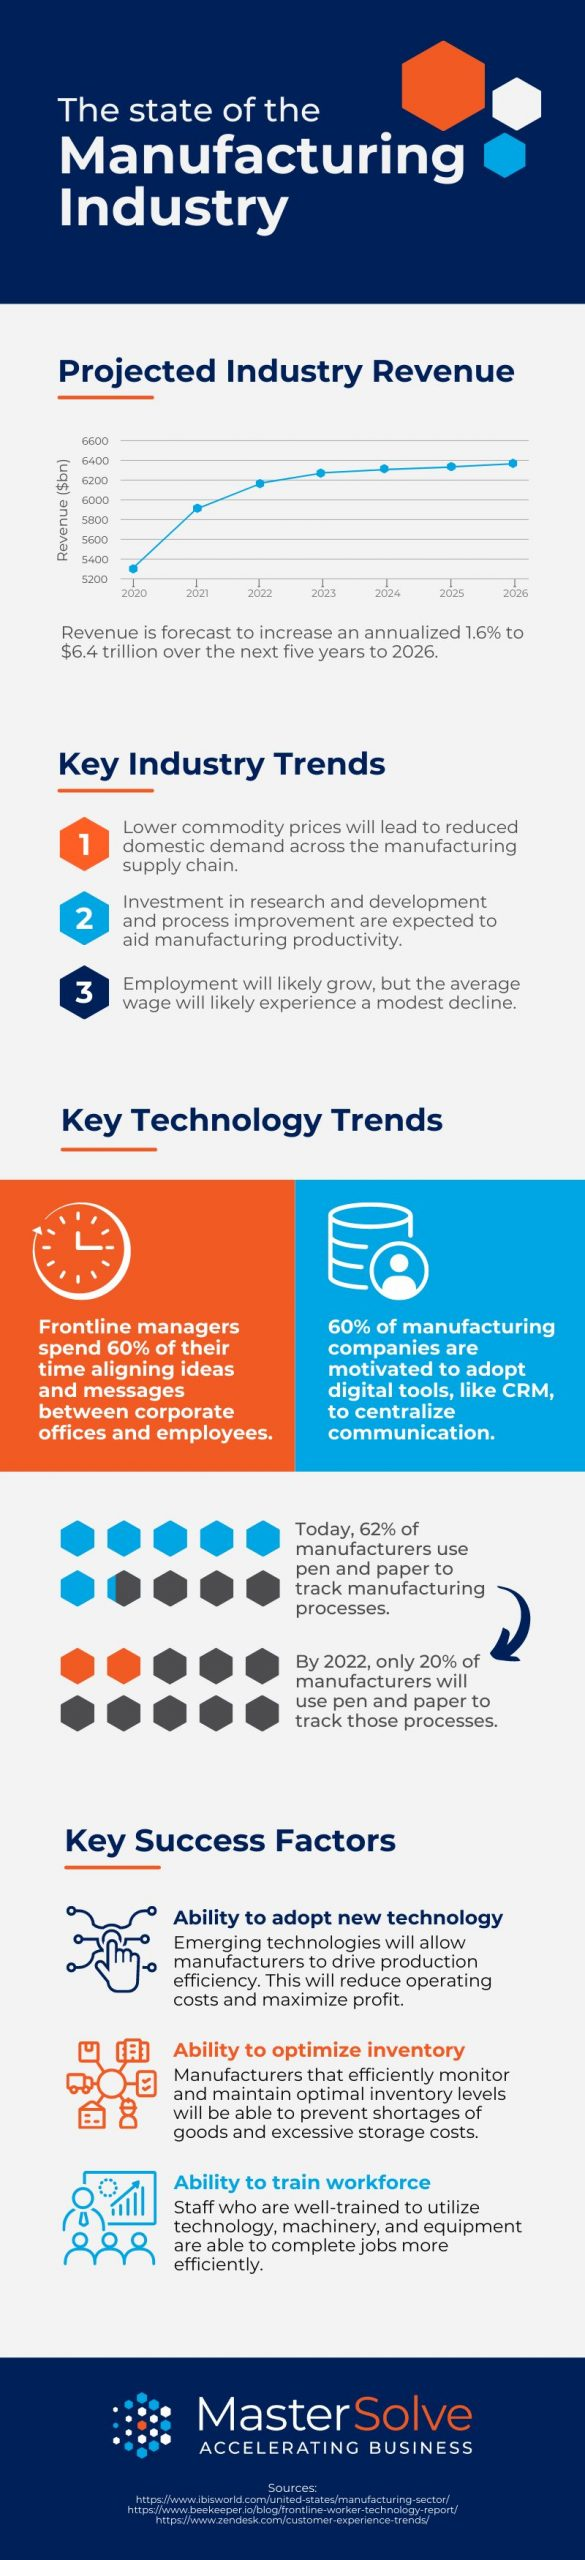 Manufacturing Trends infographic